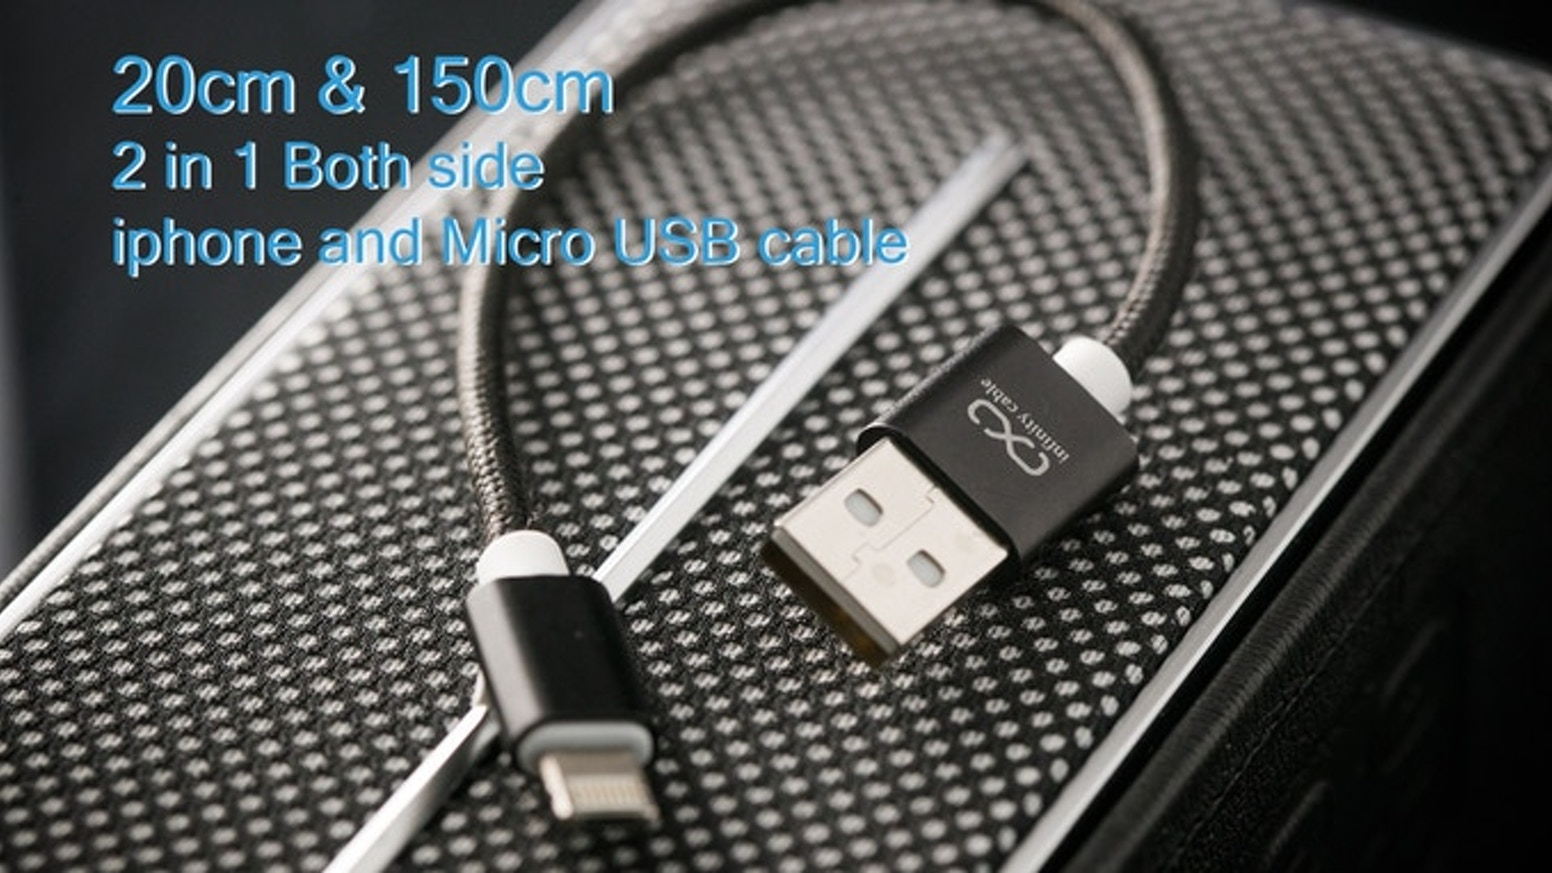 2 in 1 Both Side iphone and Micro USB cable 20cm & 150cm is the top crowdfunding project launched today. 2 in 1 Both Side iphone and Micro USB cable 20cm & 150cm raised over $33057 from 152 backers. Other top projects include TouchPad - The Arduino-compatible, customisable keyboard., The CONSTELLATION | It's a statement., The Georgetown Orbits New Album!...